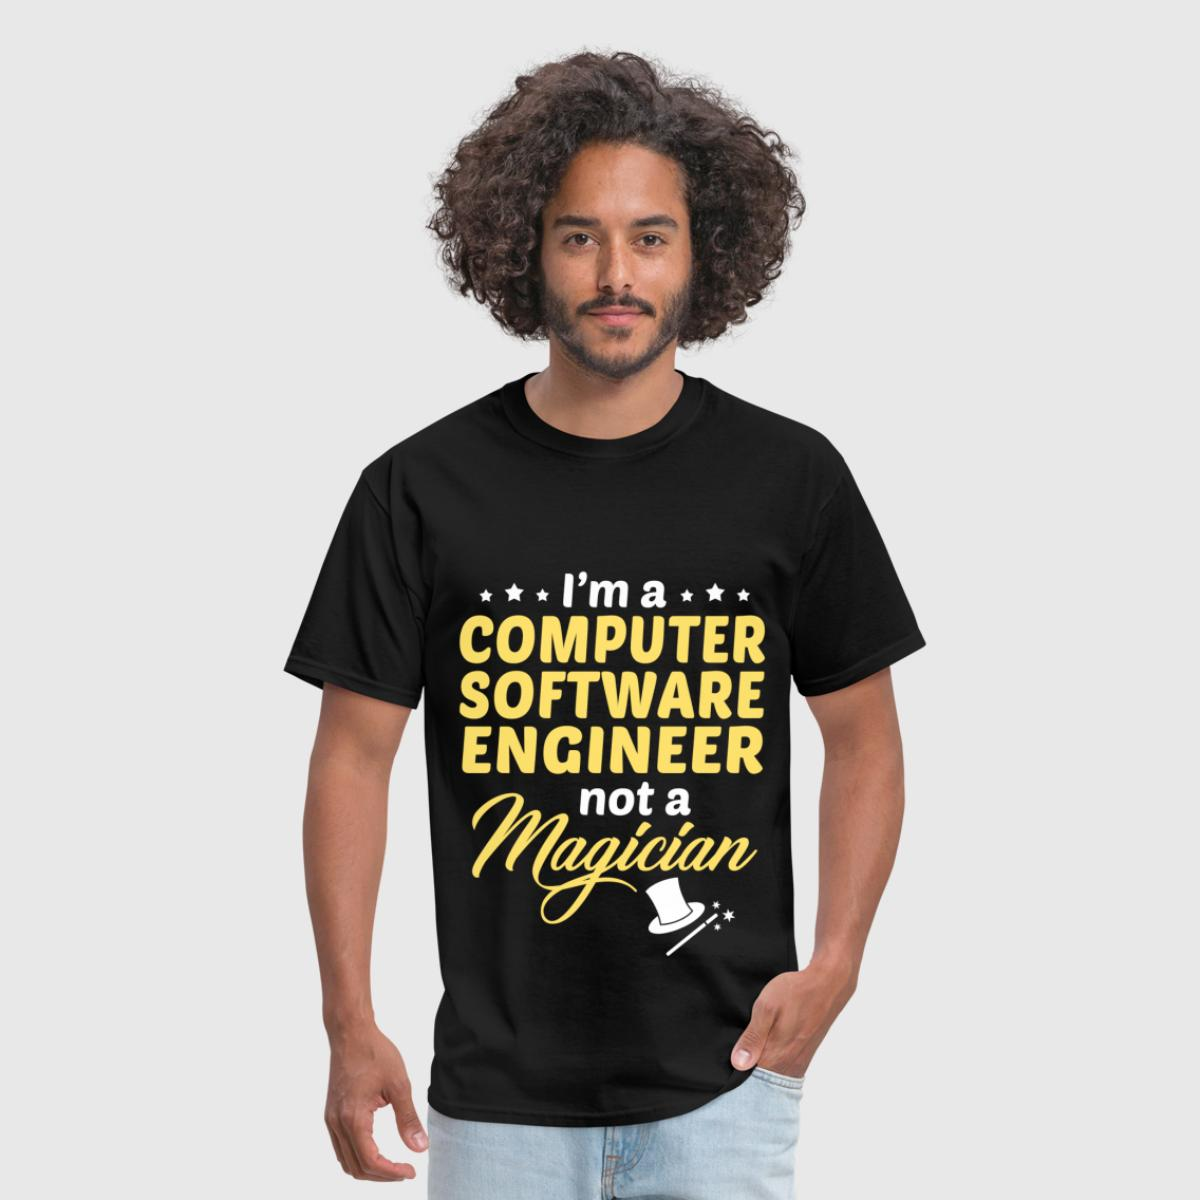 Computer Program To Design T Shirts Bcd Tofu House